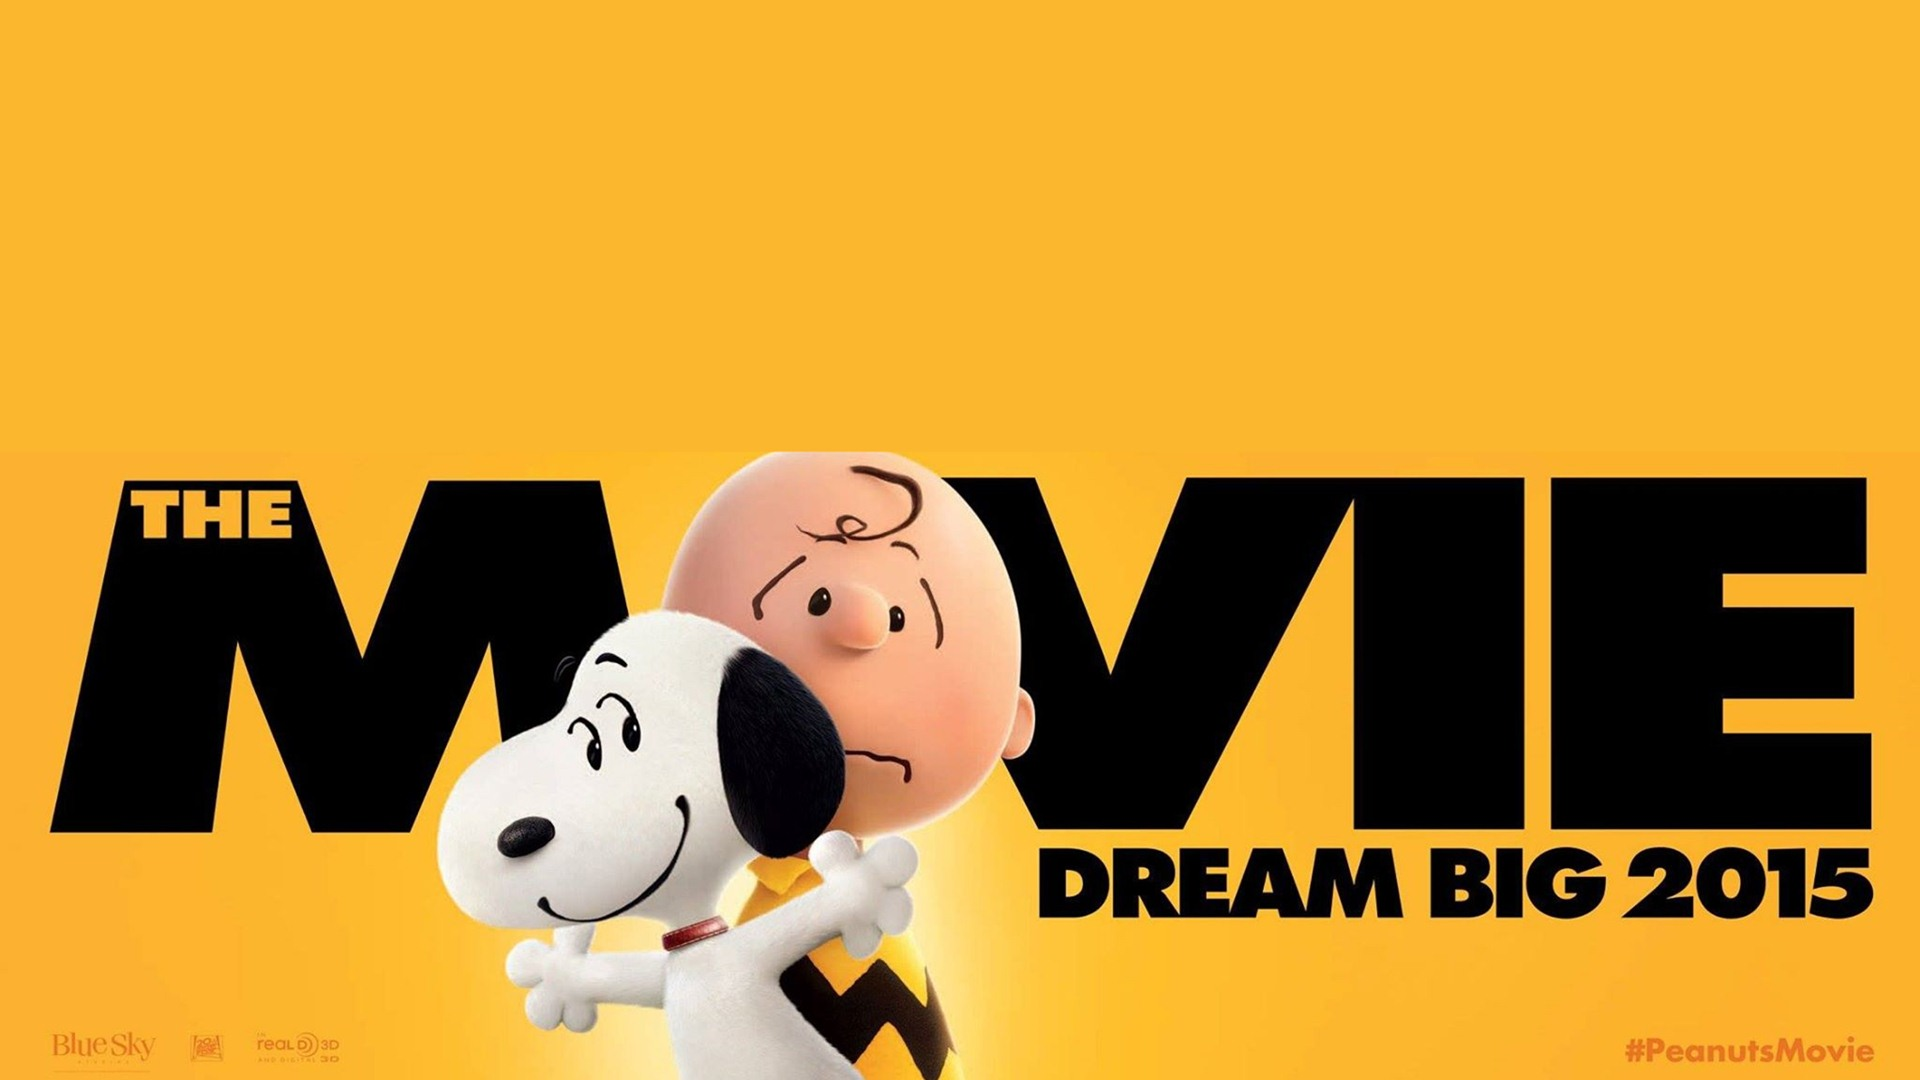 Download Snoopy And Charlie Brown The Peanuts 2015 Movie Wallpaper 1920x1080